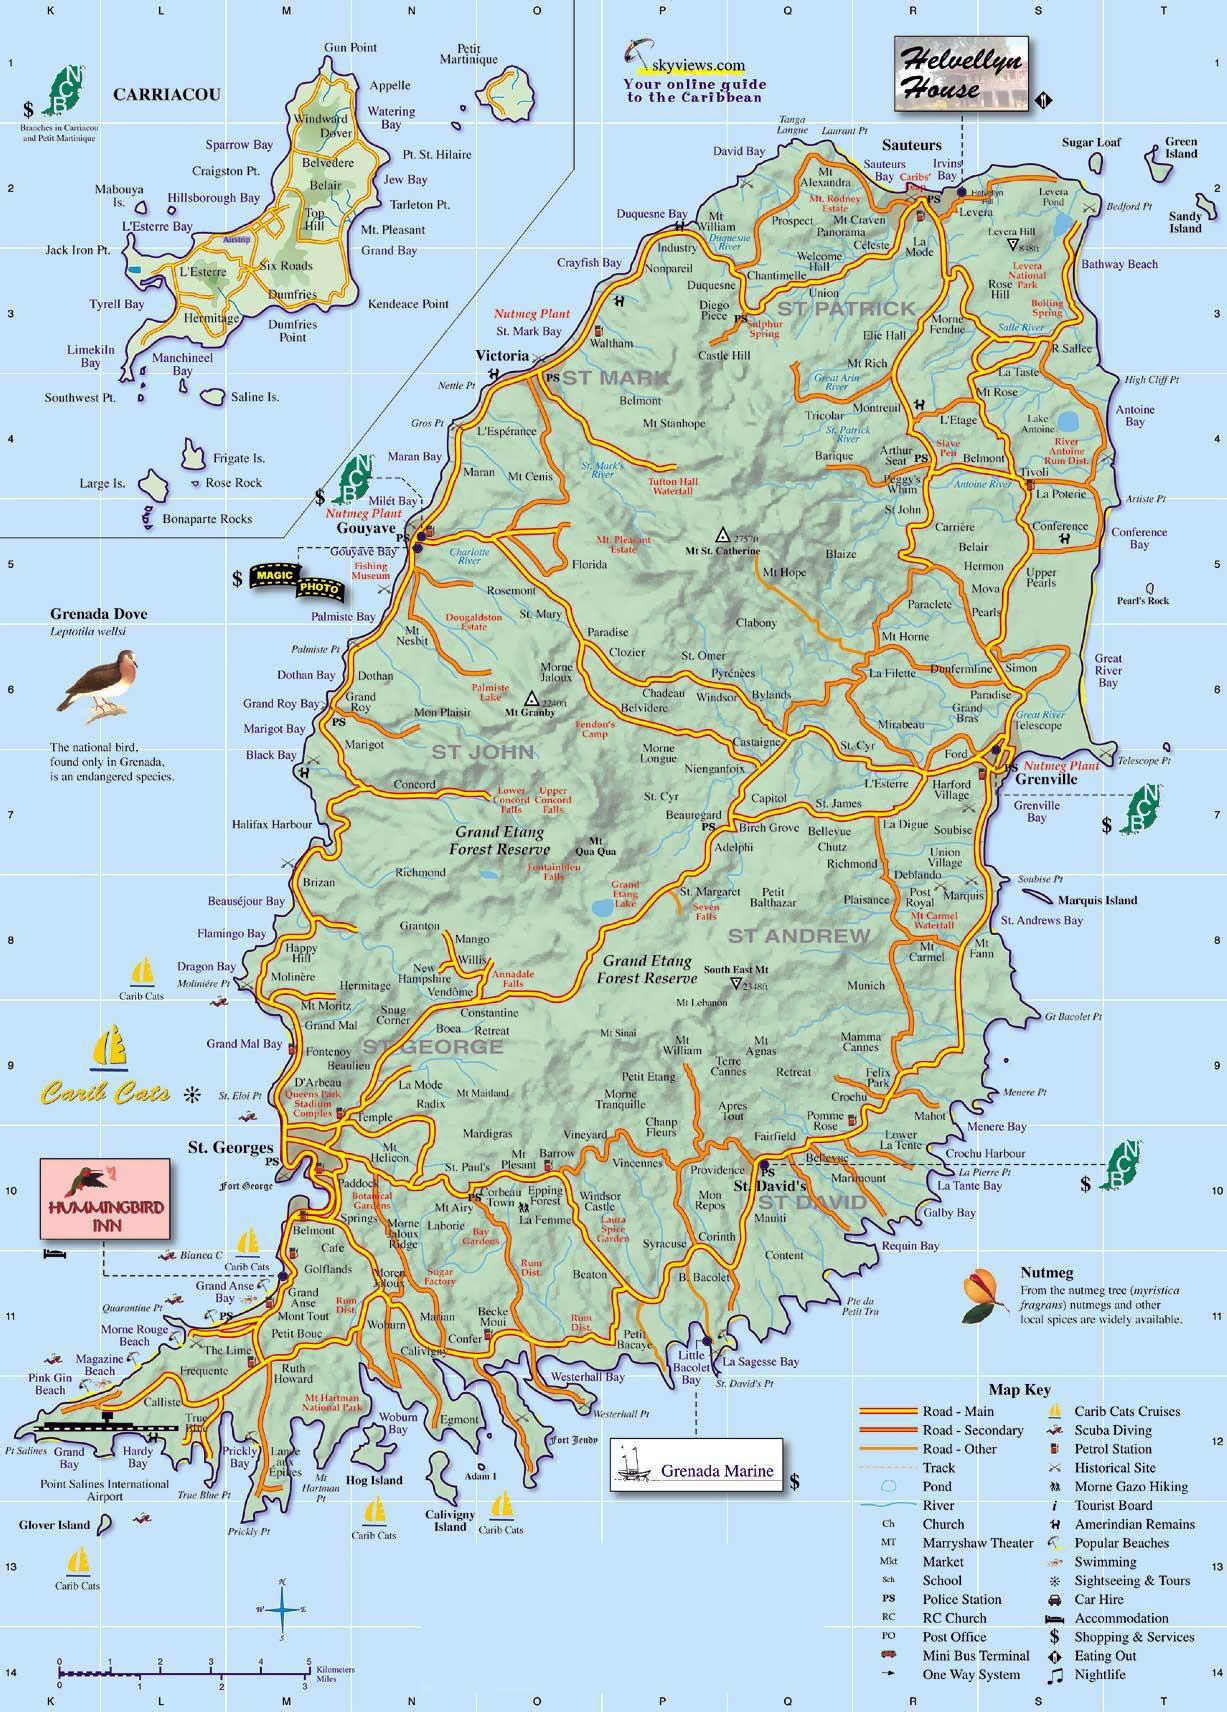 Large Detailed Road Map Of Grenada Island Grenada Island Large - Grenada map download